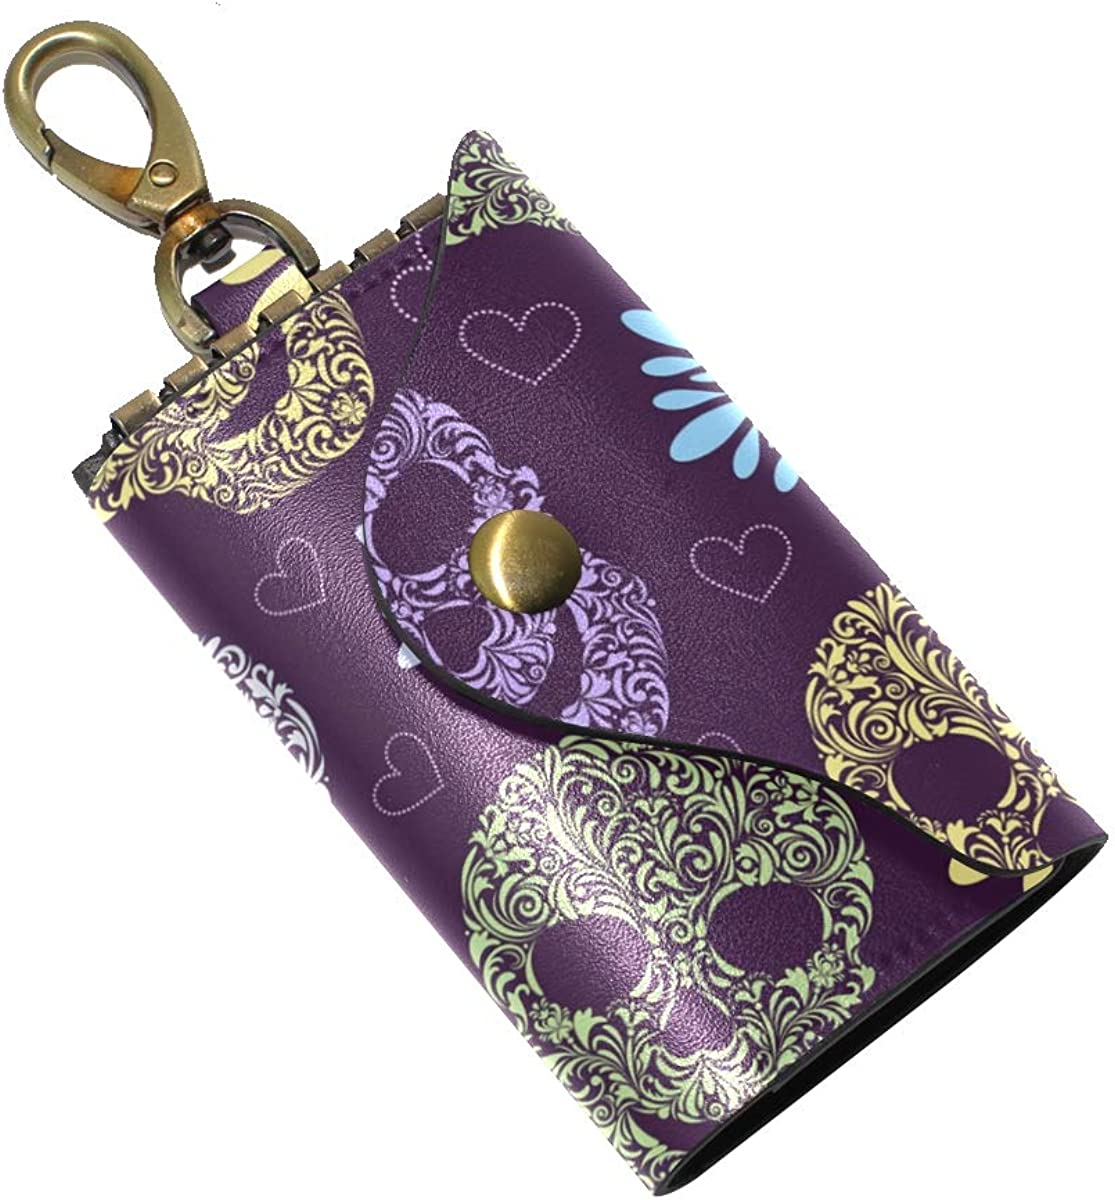 KEAKIA Abstract Flower Leather Key Case Wallets Tri-fold Key Holder Keychains with 6 Hooks 2 Slot Snap Closure for Men Women